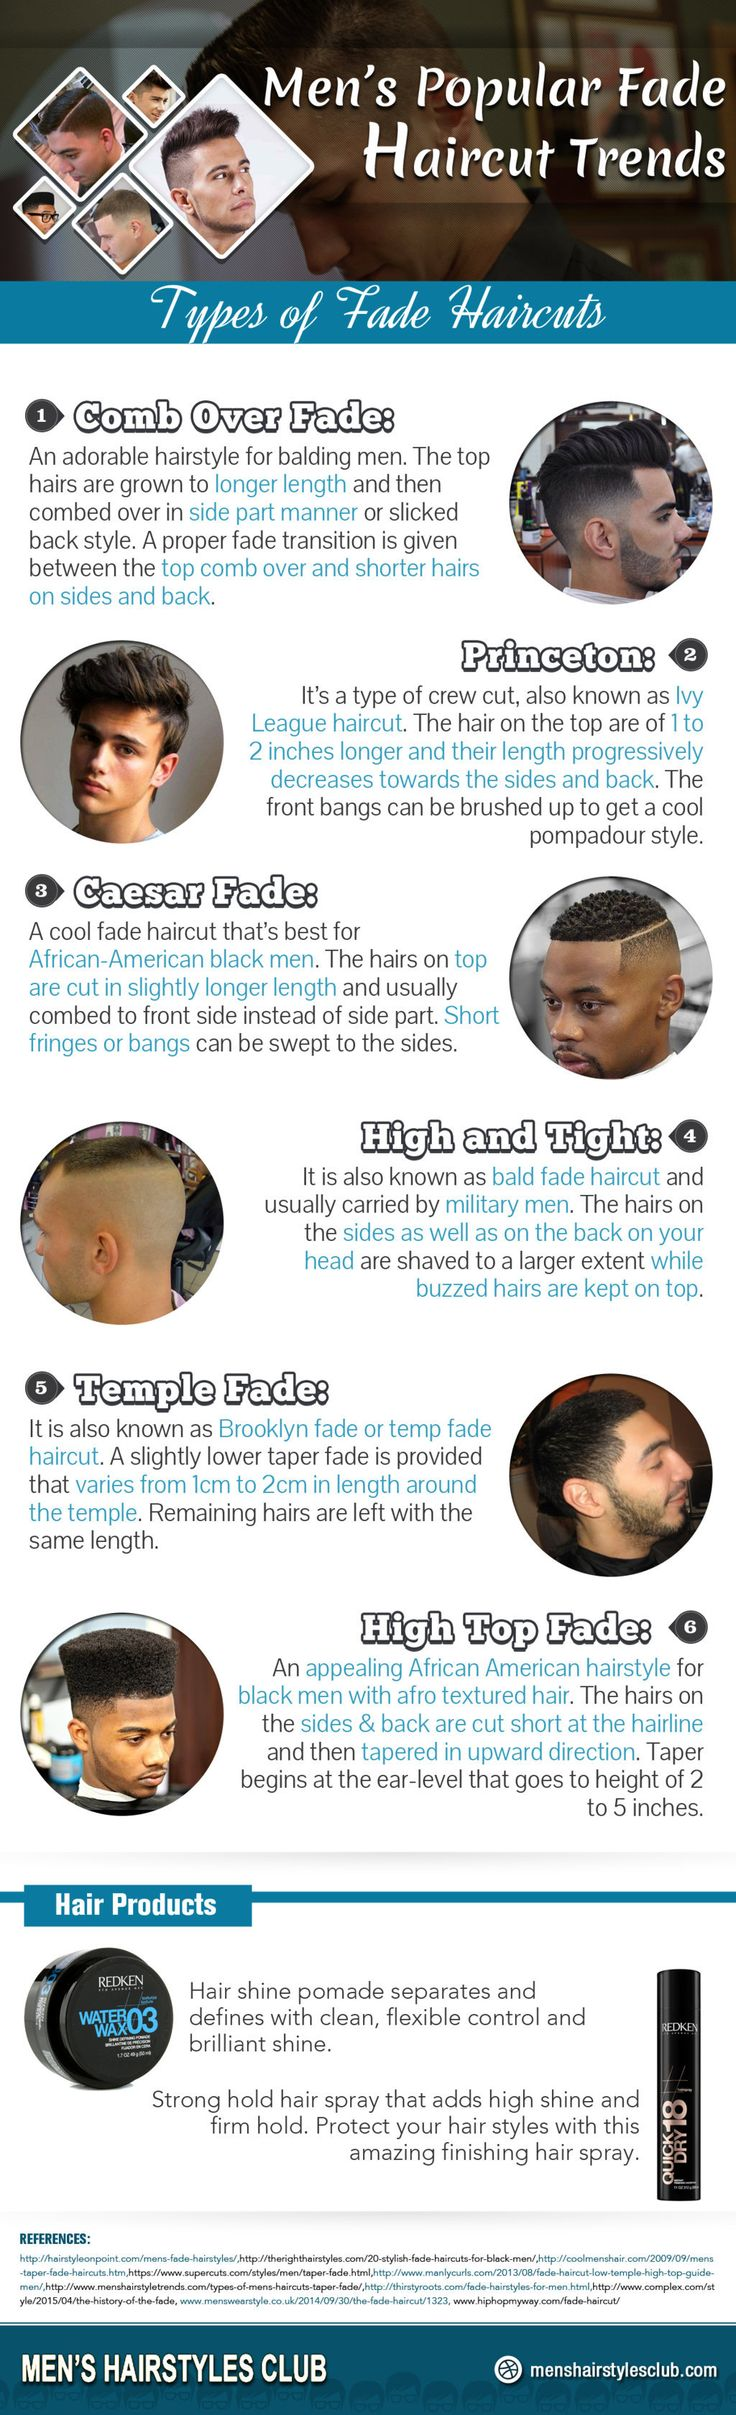 Pleasing 1000 Ideas About Types Of Fade Haircut On Pinterest Low Fade Short Hairstyles For Black Women Fulllsitofus